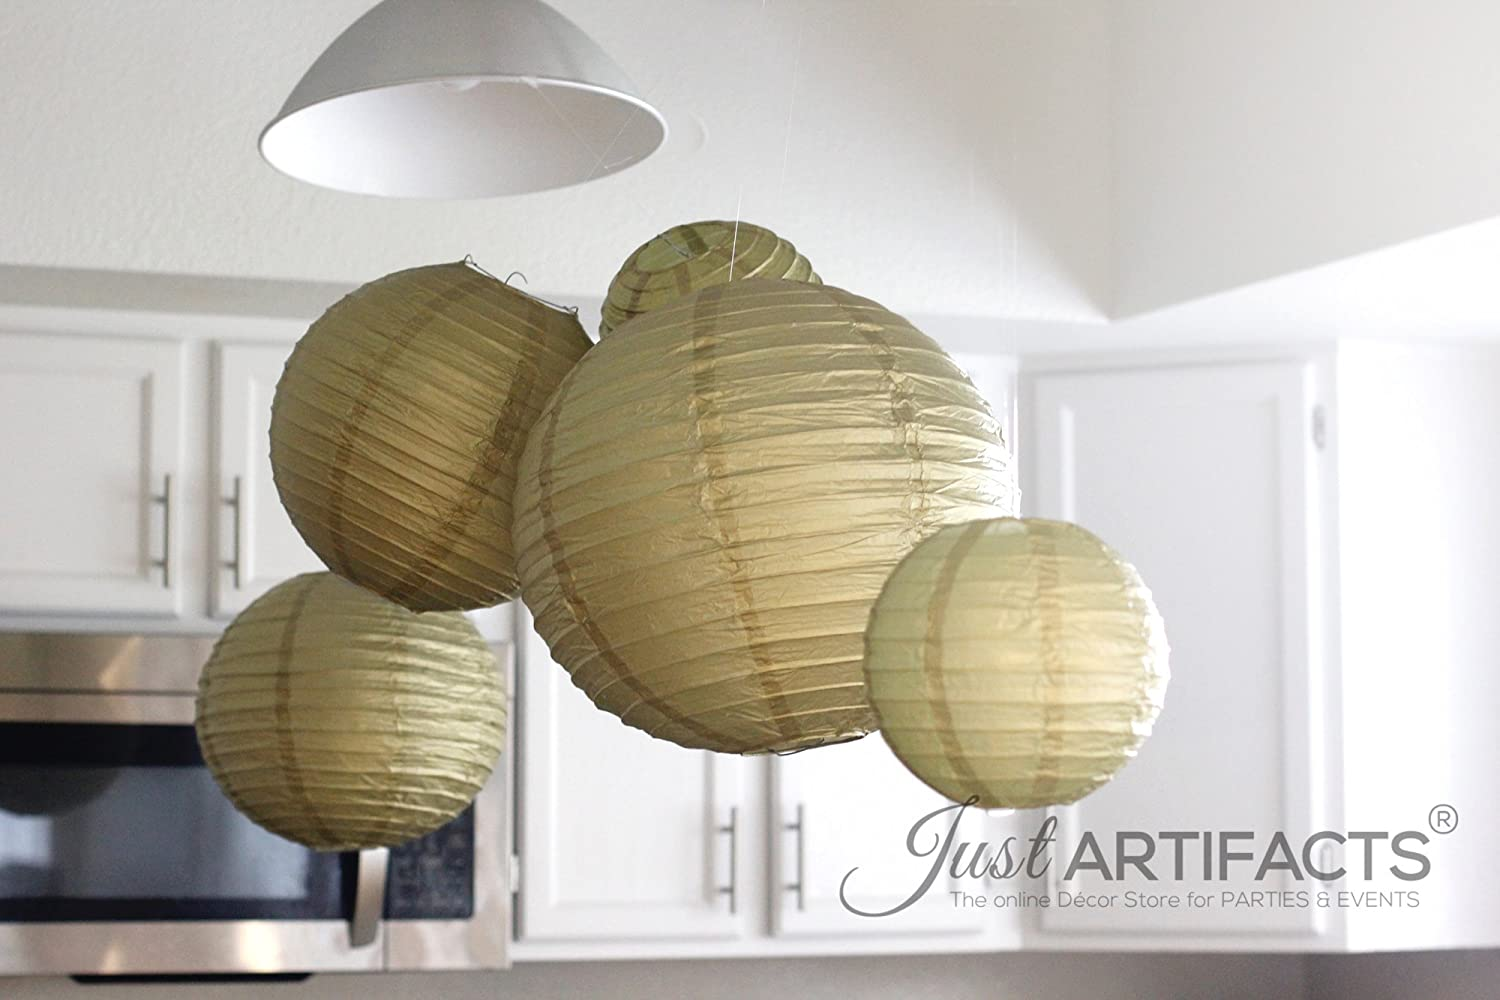 Chinese//Japanese Paper Lanterns 8inch, 1 2 Just Artifacts 2 White Assorted: 16inch 12inch, - Click for More Colors!